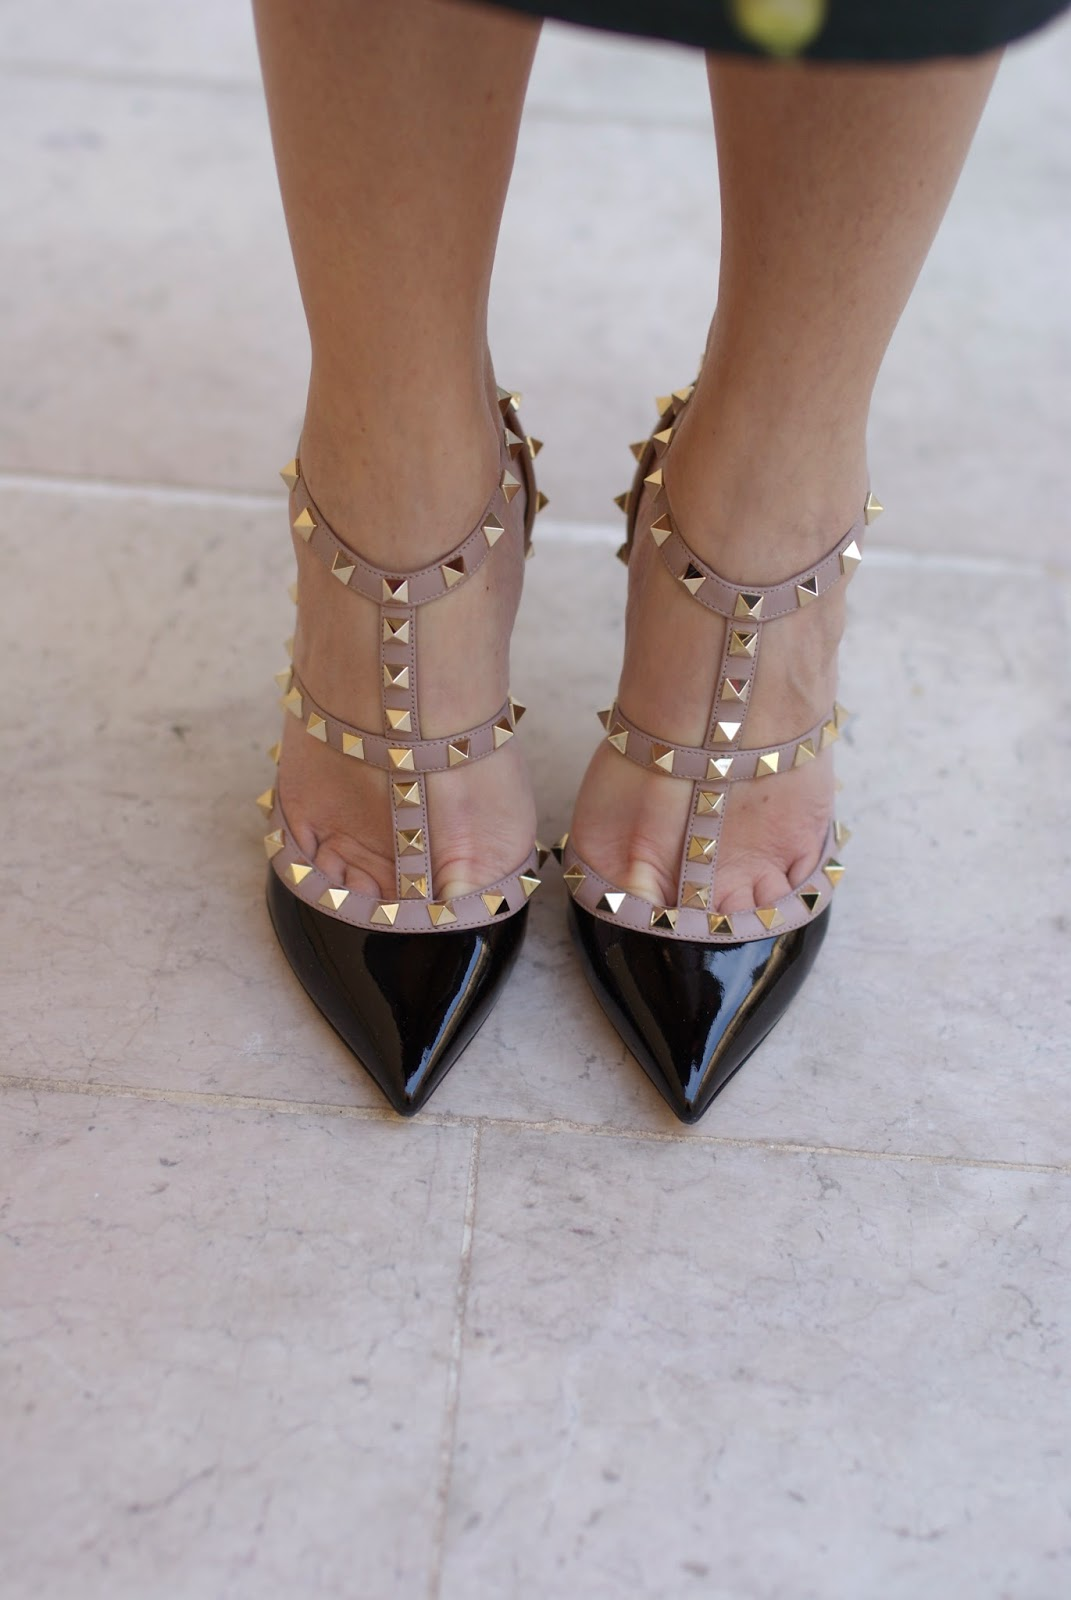 Valentino Rockstud pumps, black patent Valentino heels, Fashion and Cookies, fashion blogger